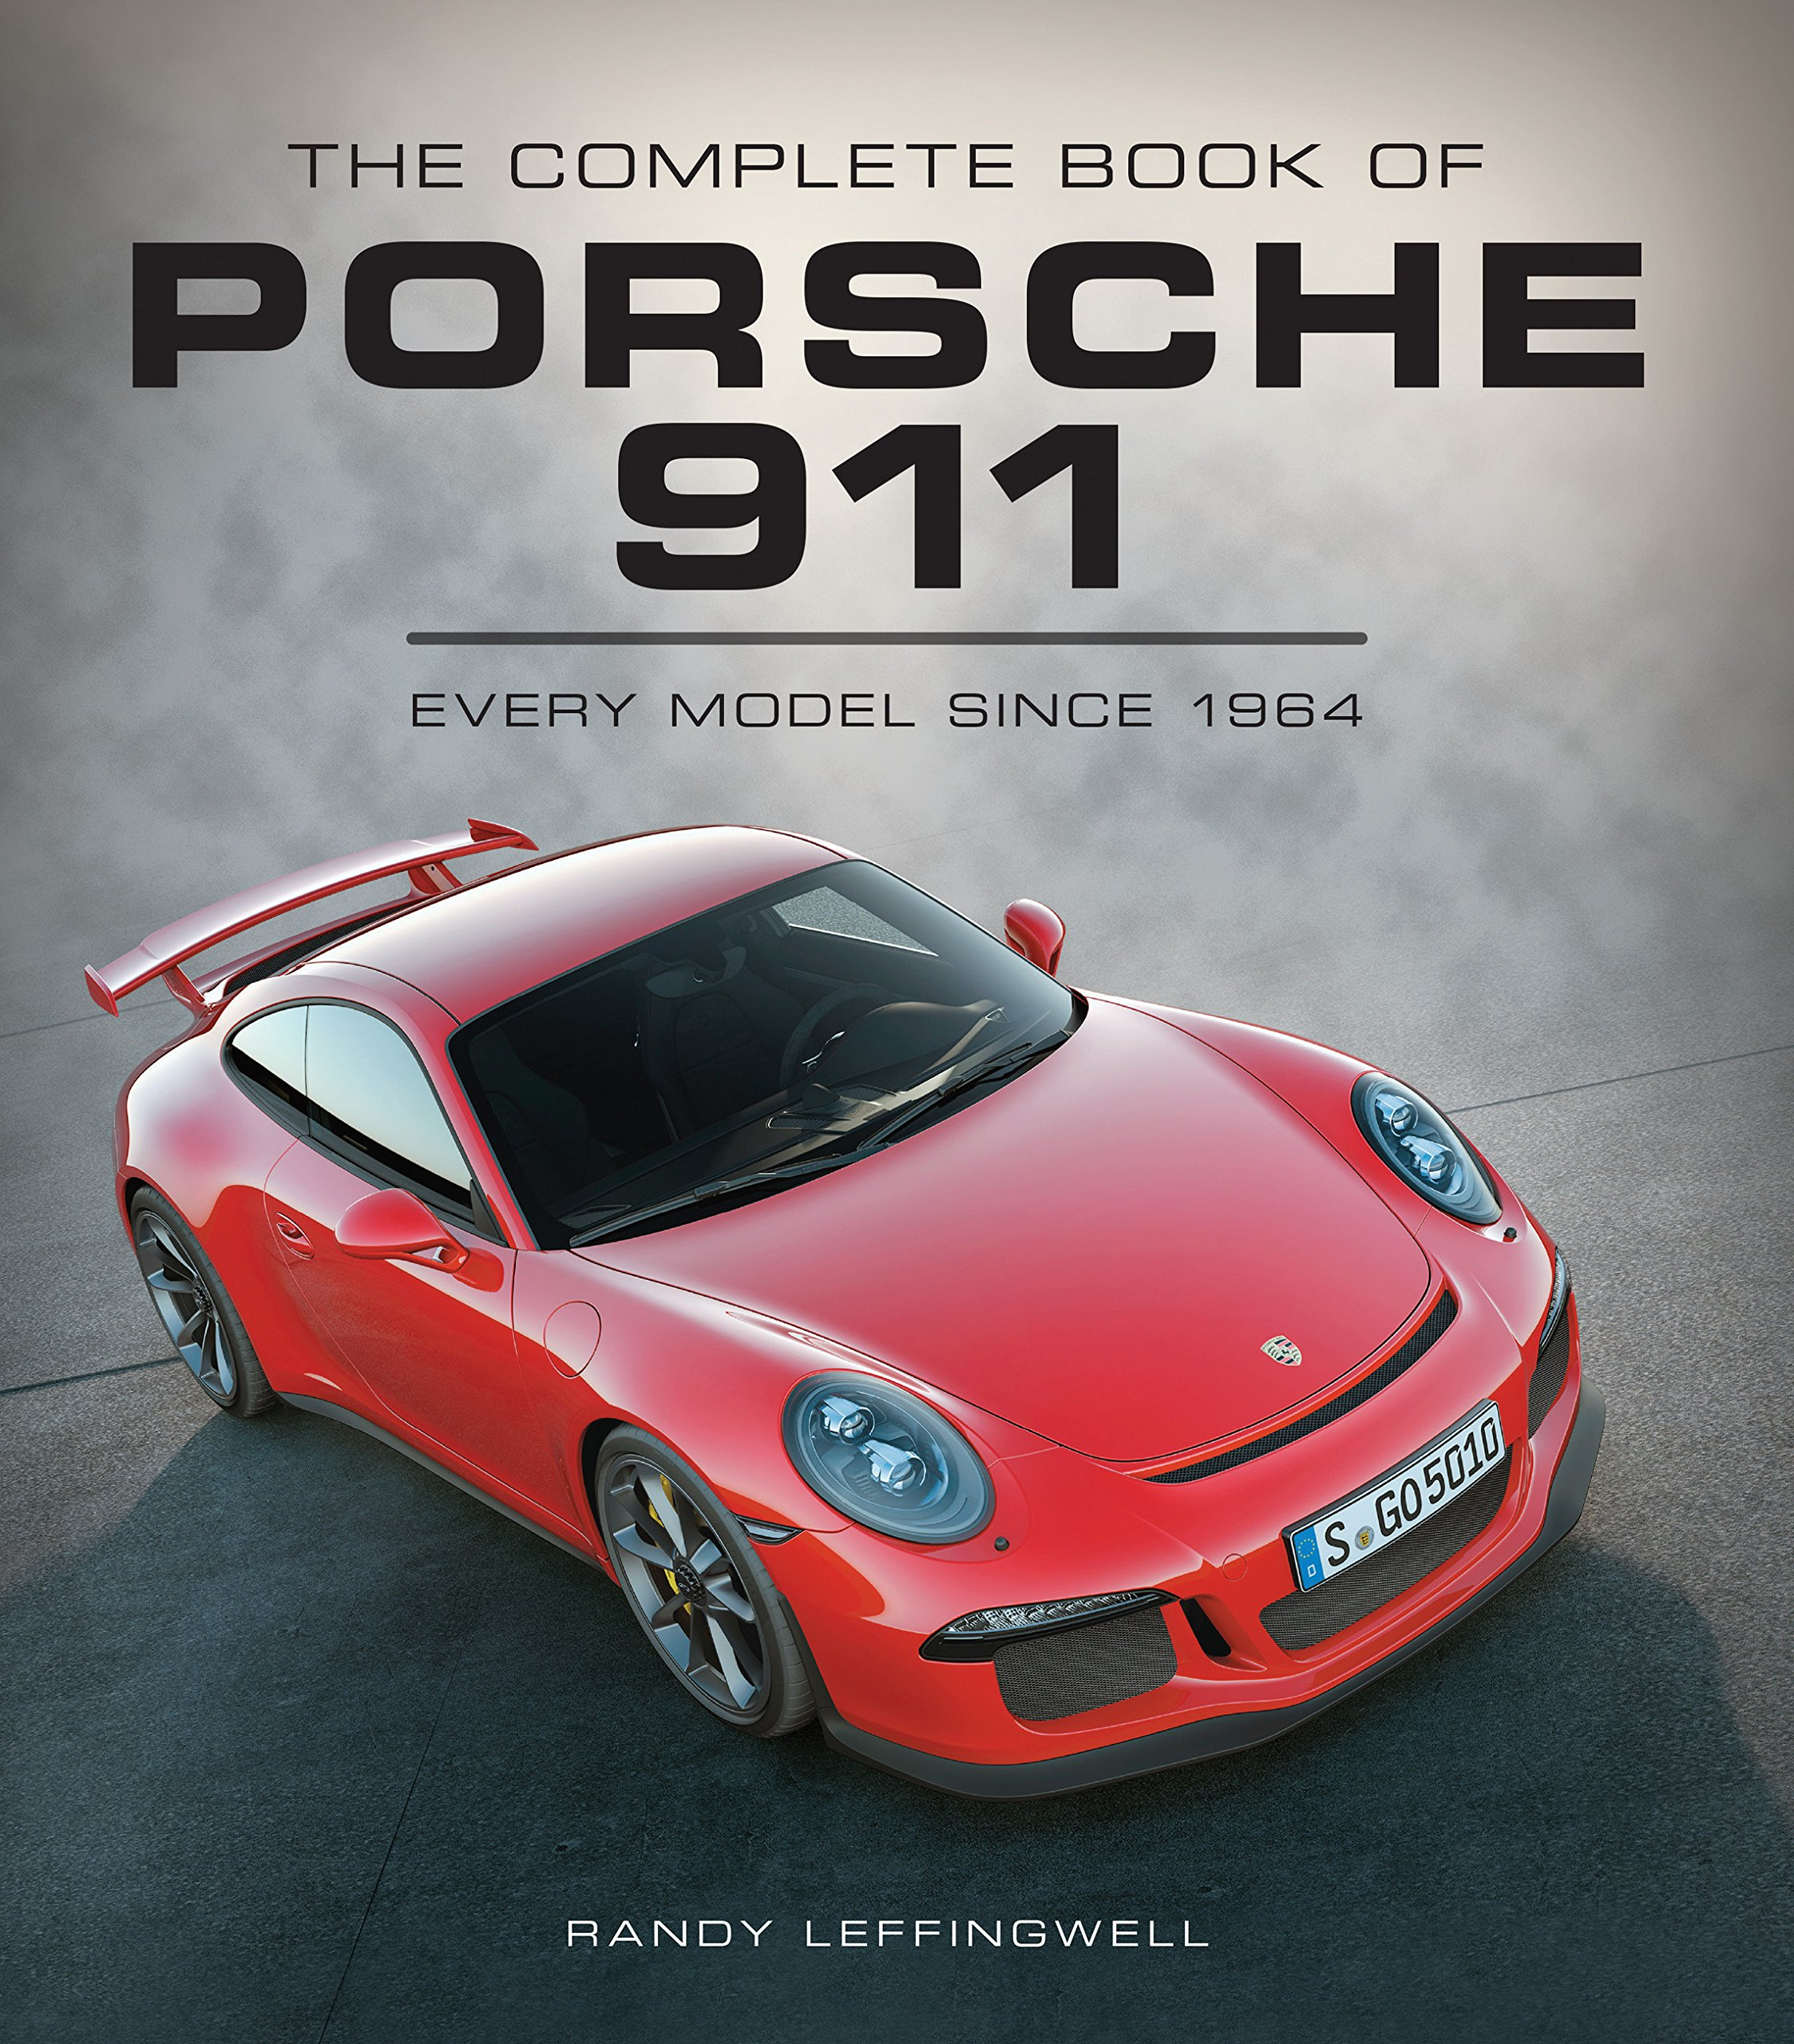 The Complete Book of Porsche 911: Every Model Since 1964 Complete Book Series: Amazon.es: Randy Leffingwell: Libros en idiomas extranjeros